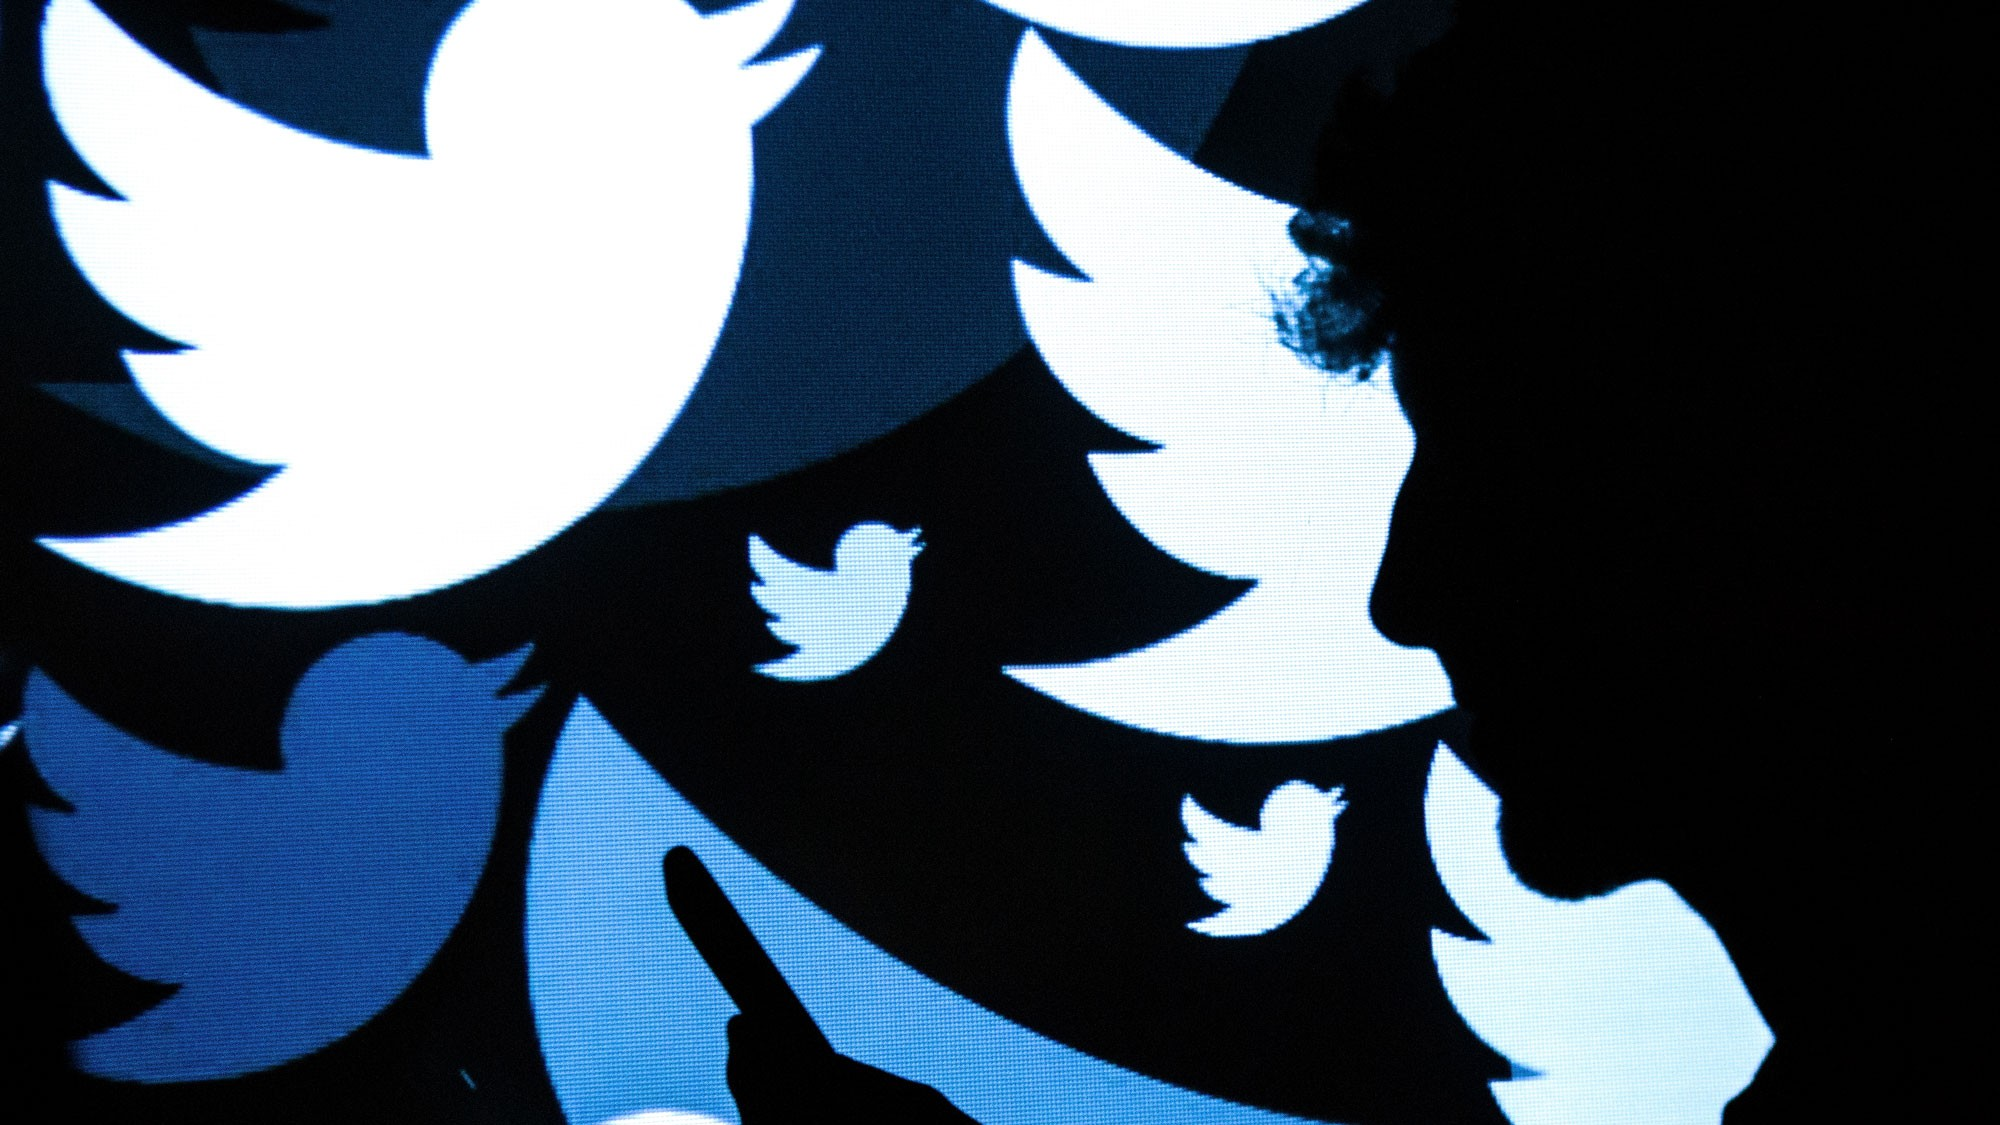 Twitter has to figure out what to do with dead people